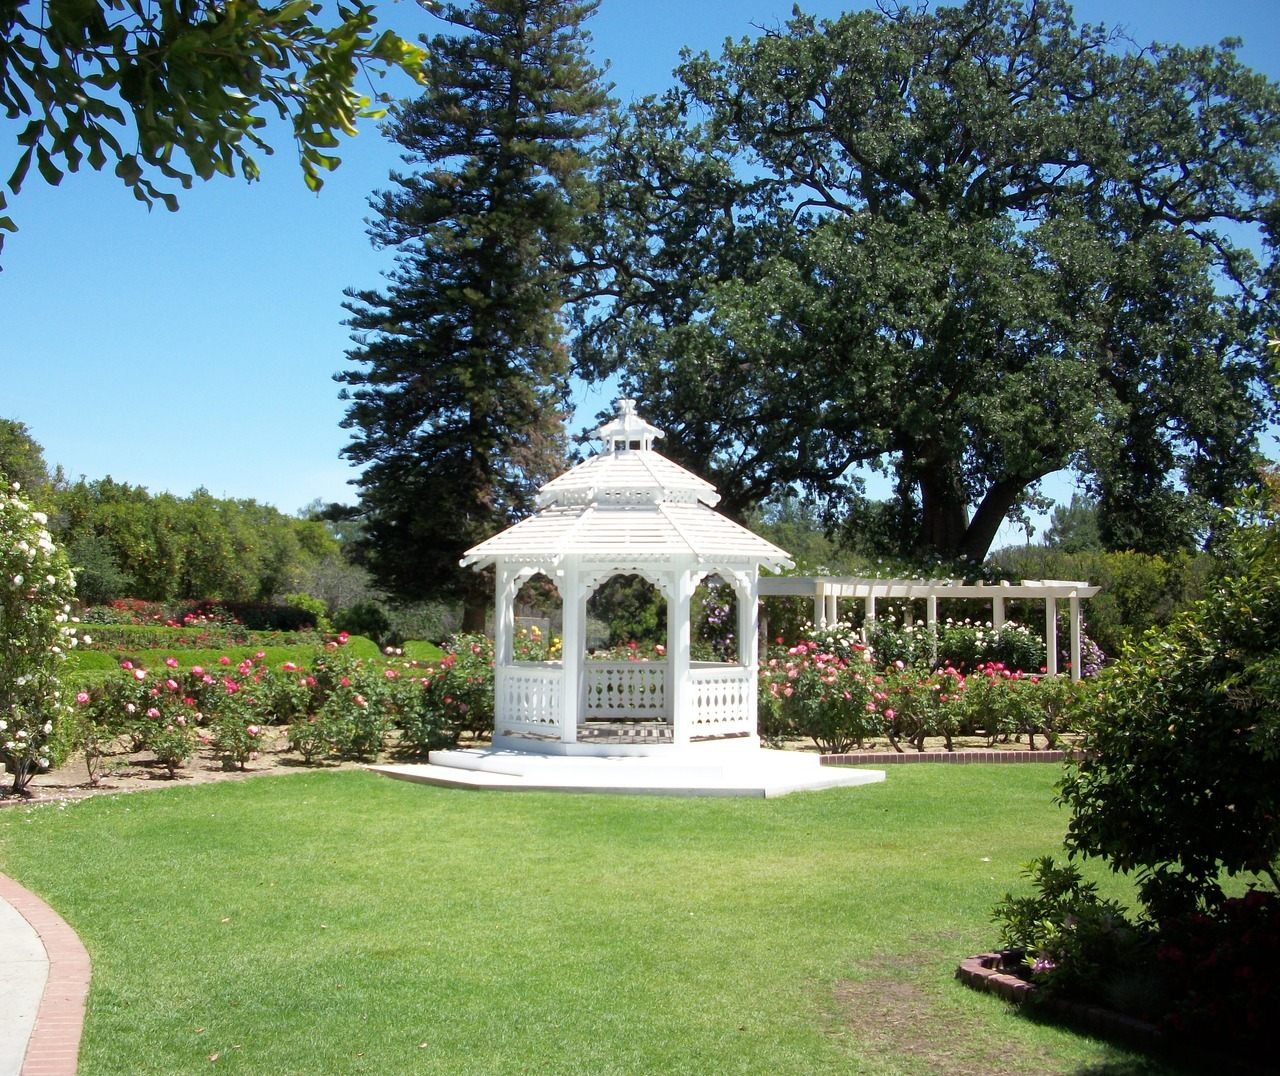 Orcutt Ranch Gazebo In Main Courtyard